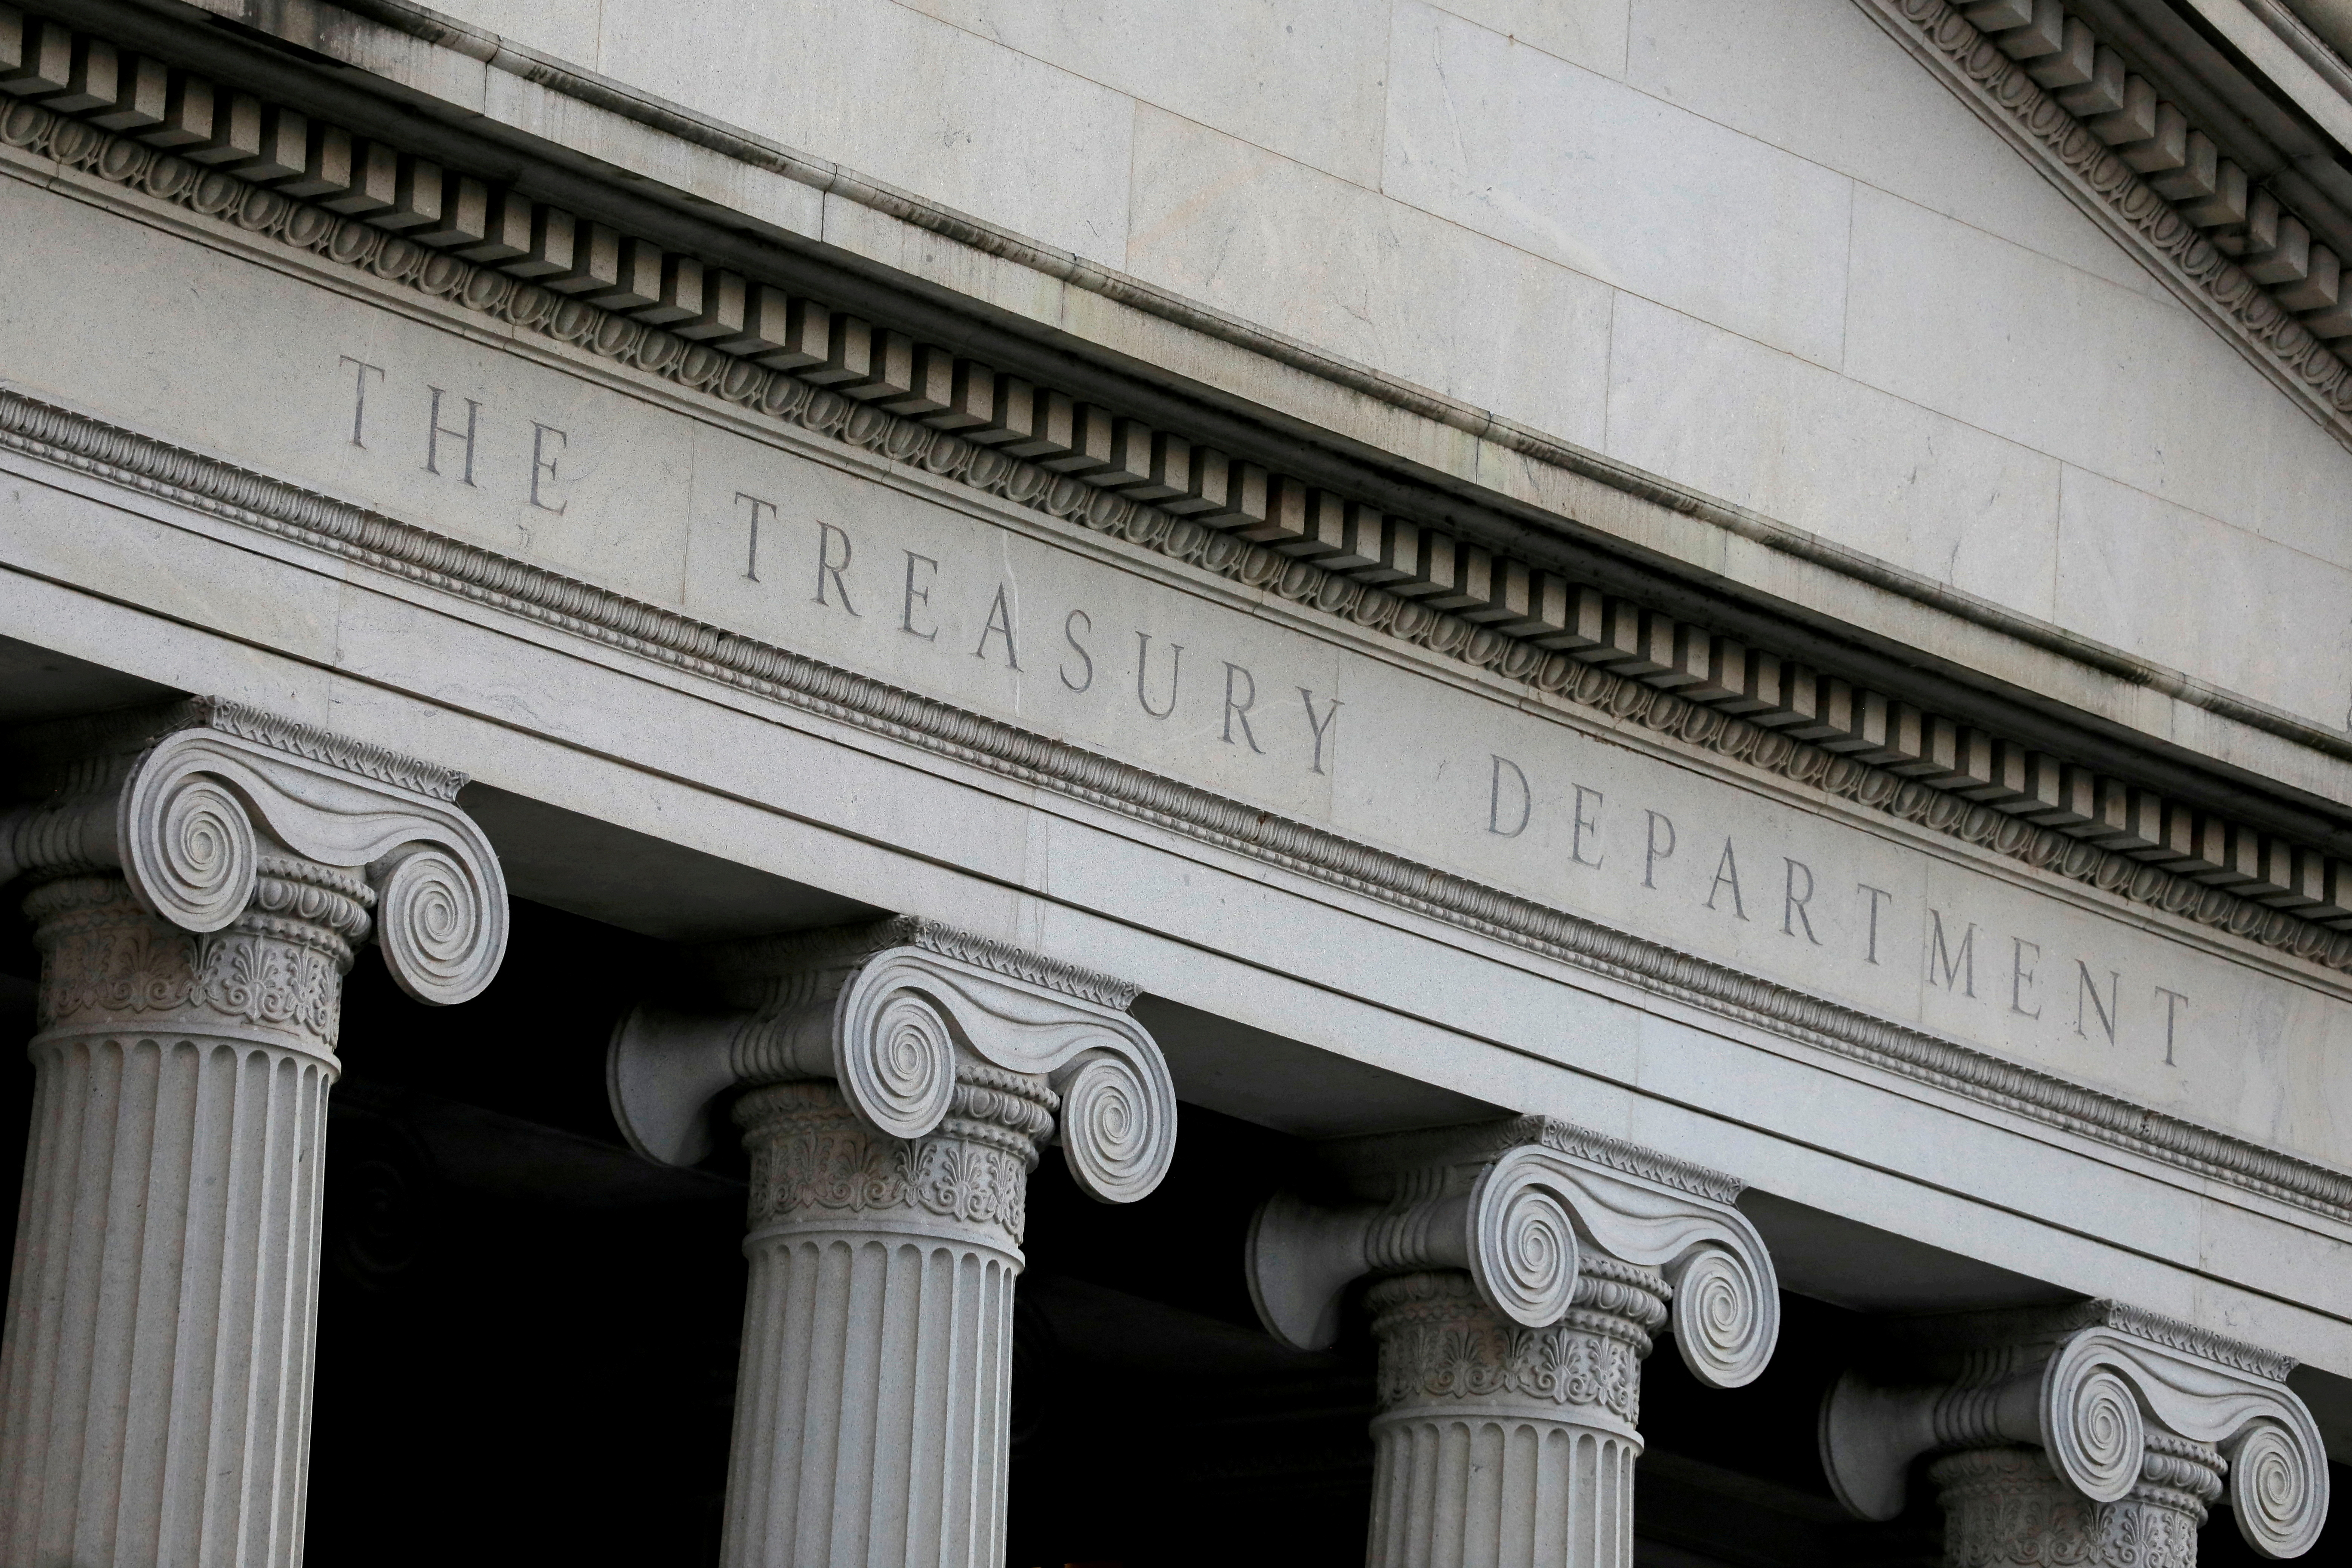 The United States Department of the Treasury is seen in Washington, D.C., U.S., August 30, 2020. REUTERS/Andrew Kelly